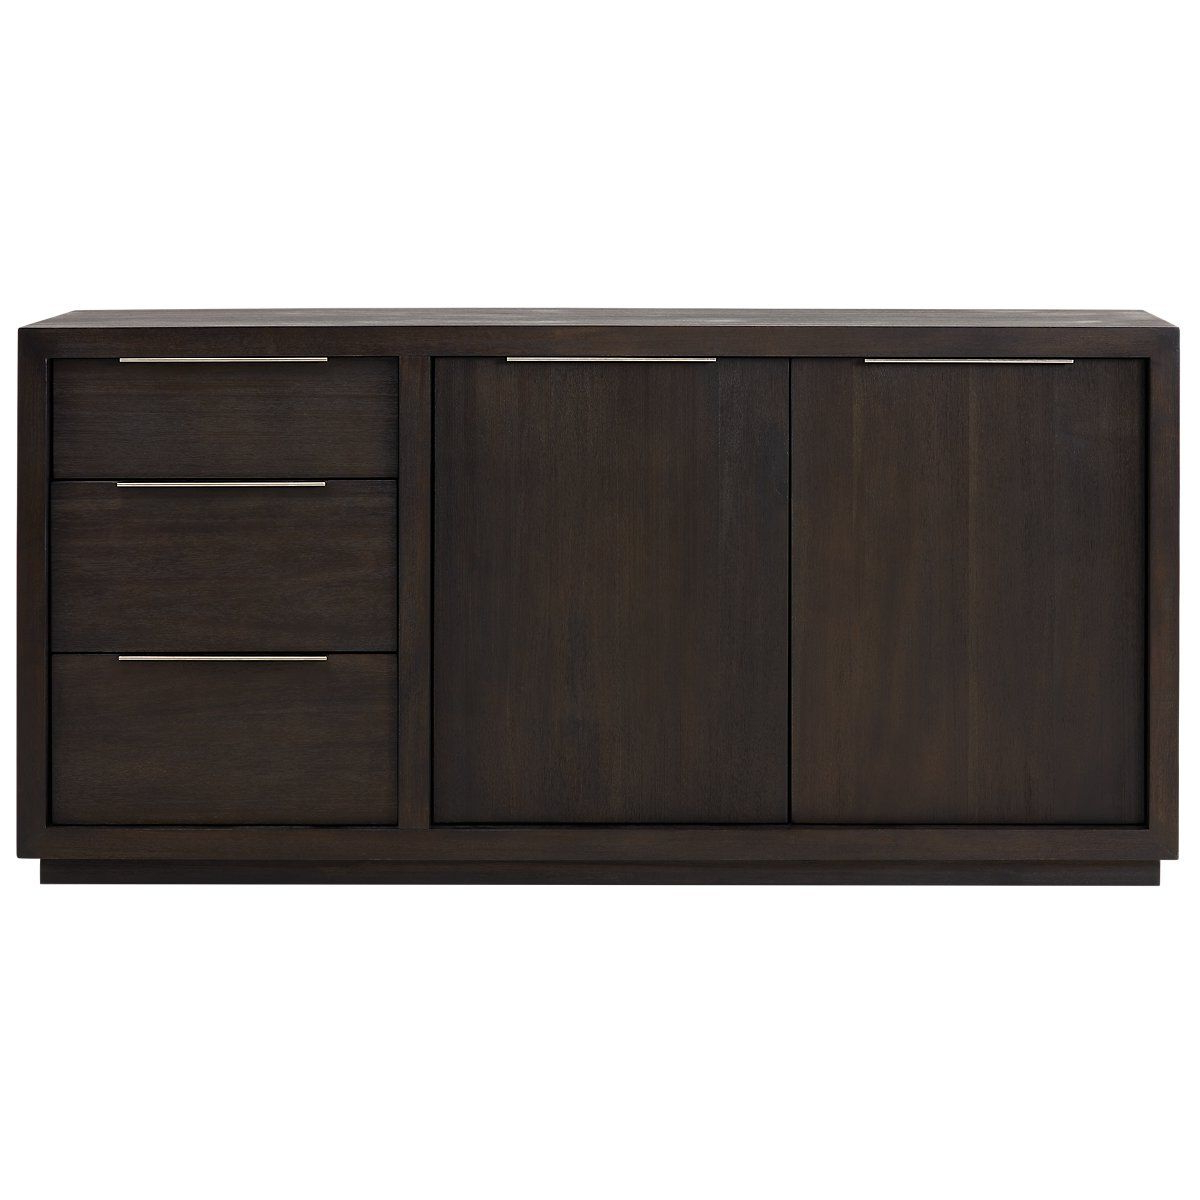 Candide Wood Credenzas With Regard To Preferred Candide Dark Gray Wood Credenza (View 4 of 20)